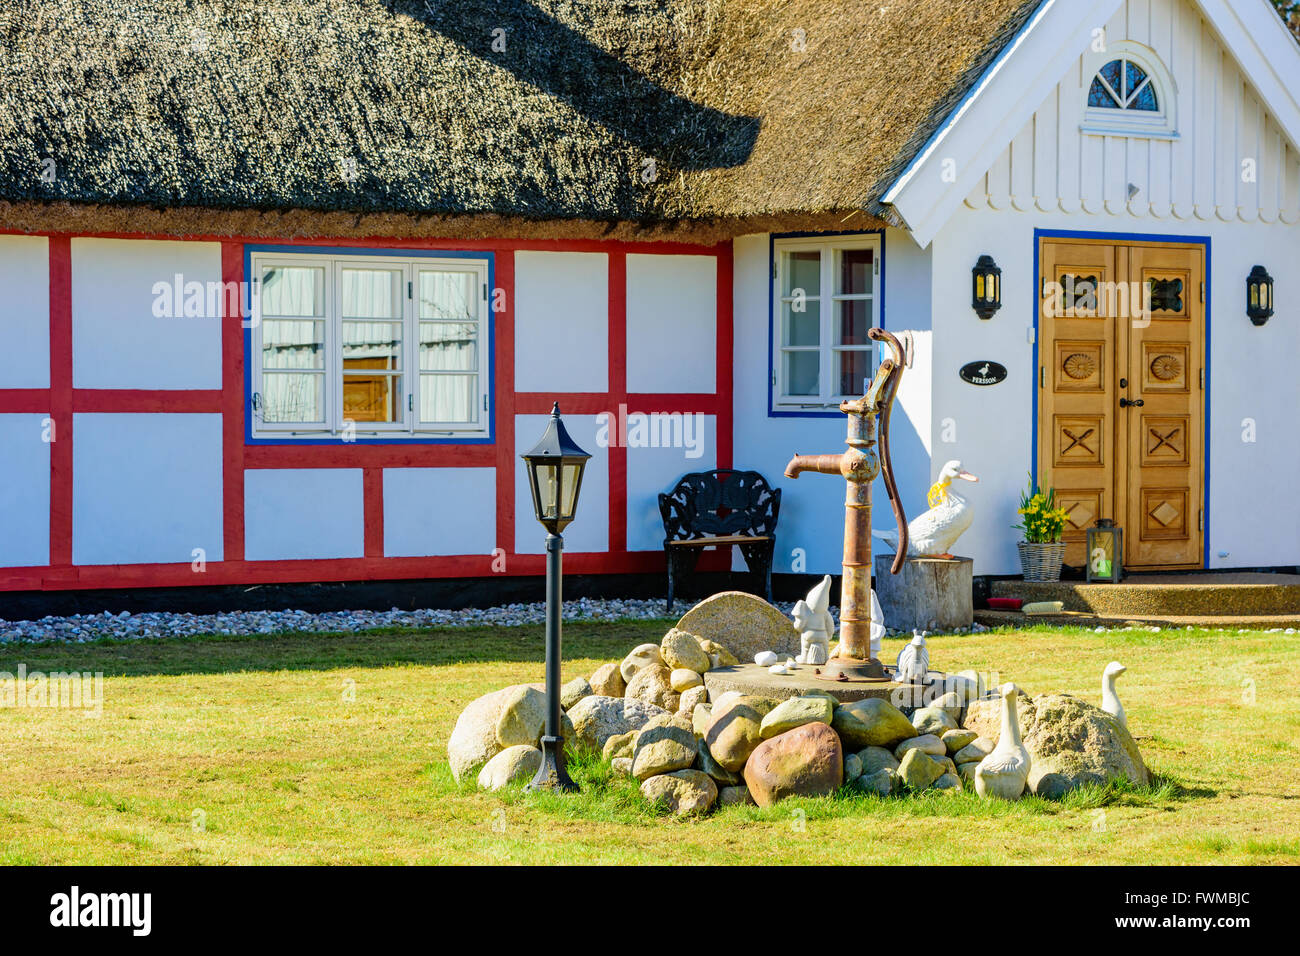 Kivik, Sweden - April 1, 2016: Lovely garden ornamentals around a water pump. Some gnomes, a snail and some ducks - Stock Image